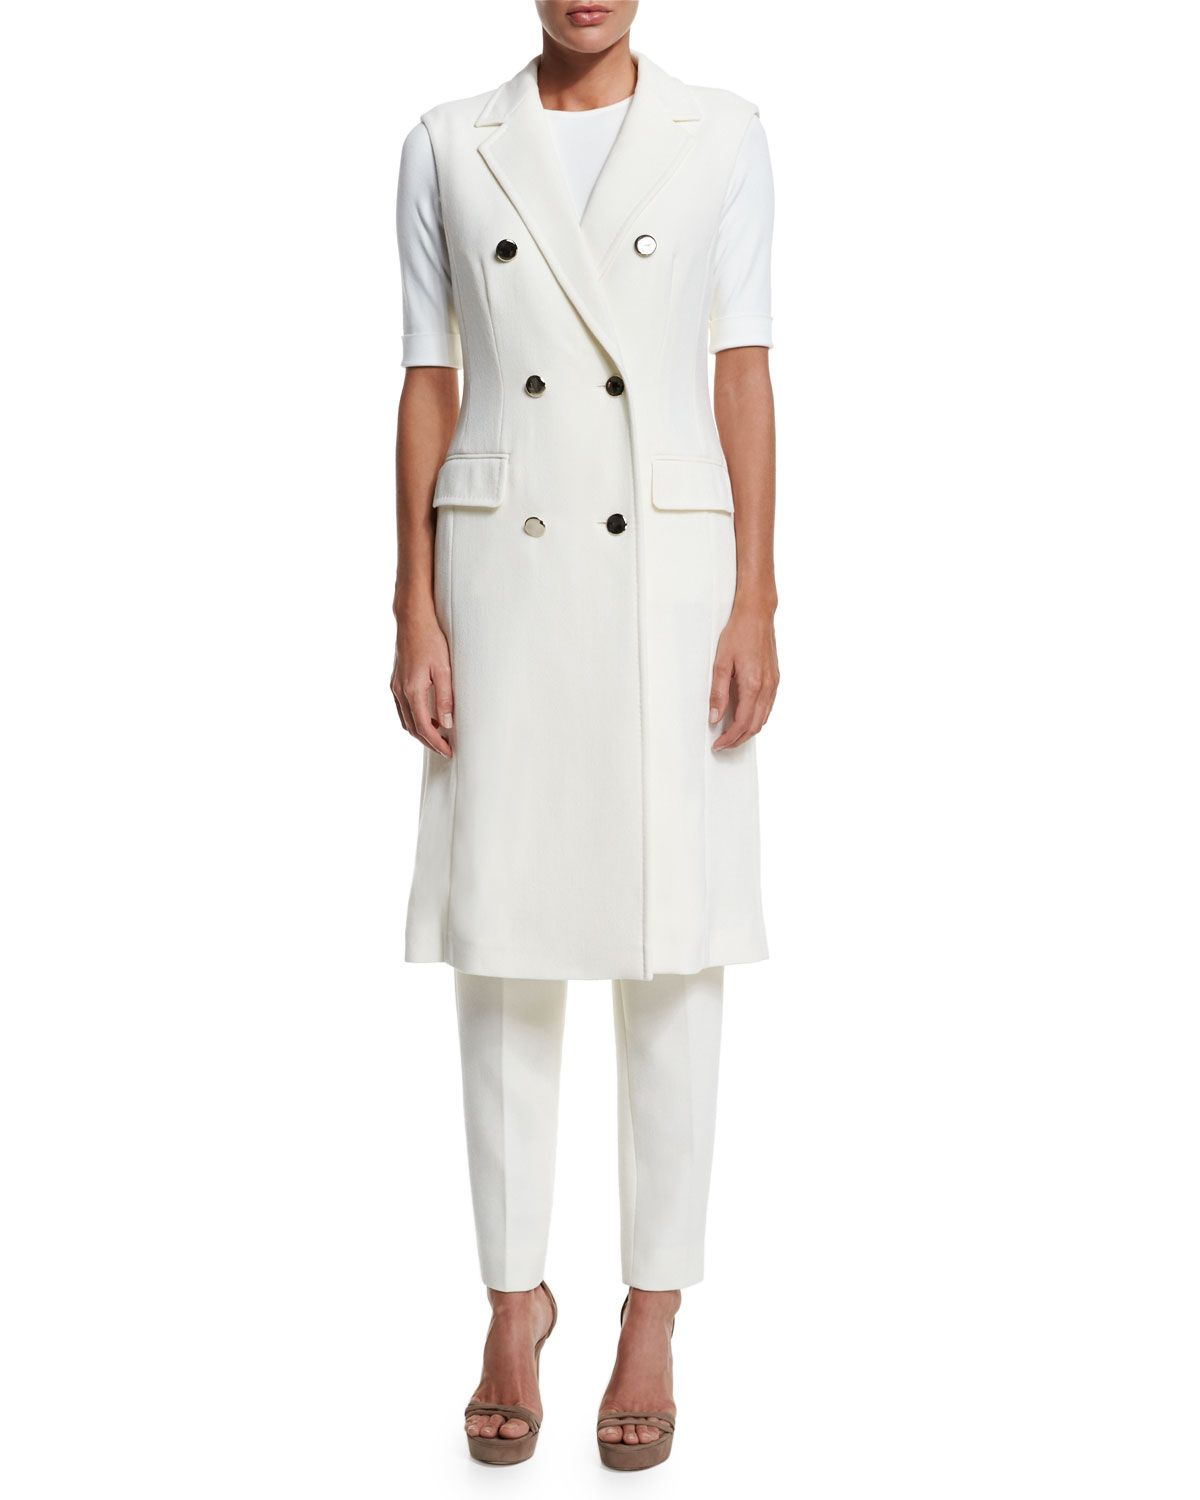 a067d56b10a936 Double-Breasted Sleeveless Long Jacket